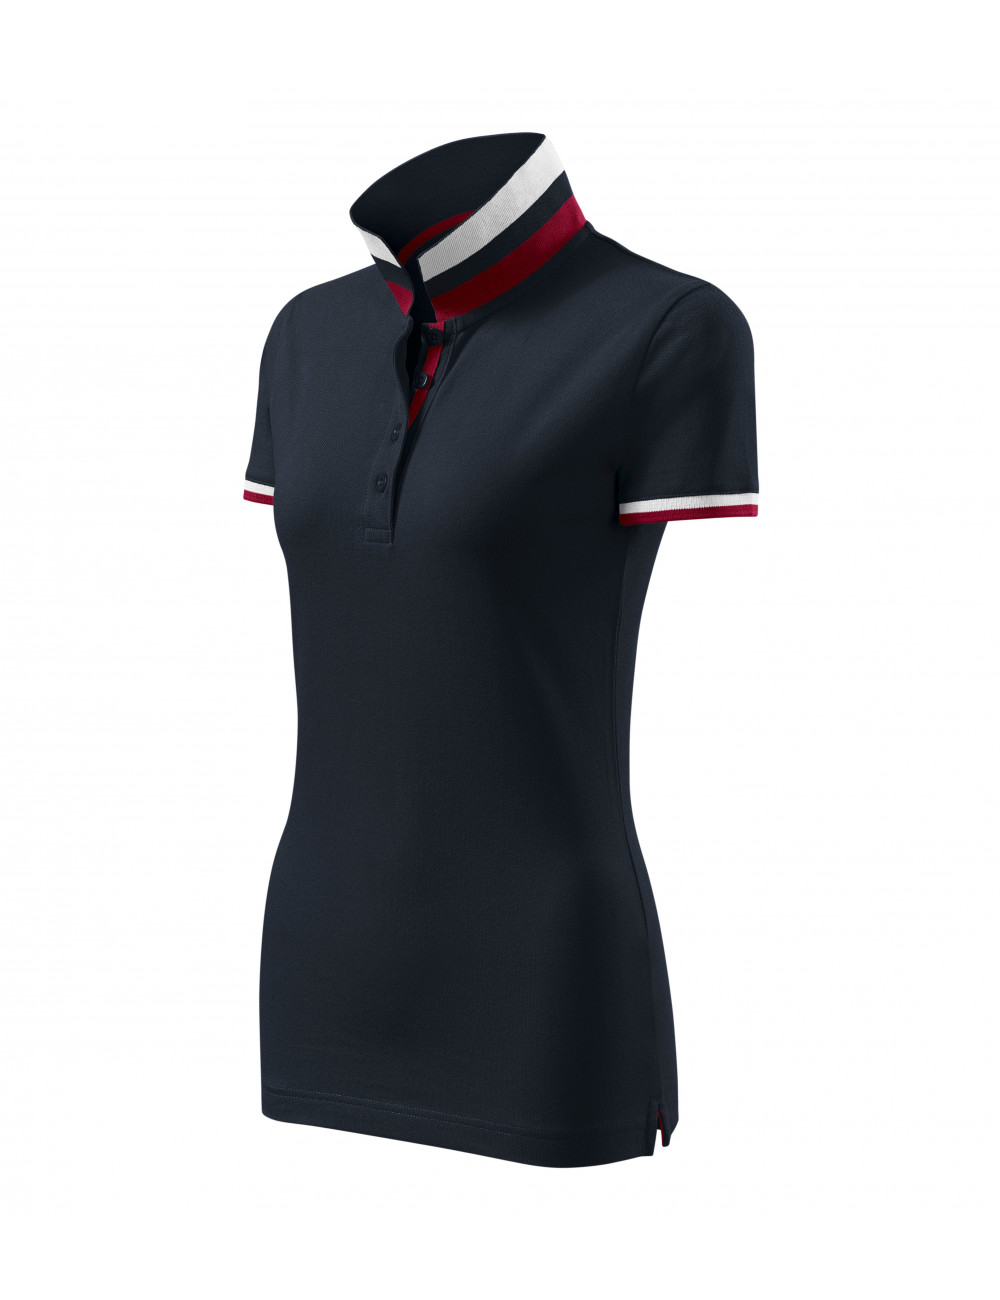 Adler MALFINIPREMIUM Koszulka polo damska Collar Up 257 dark navy